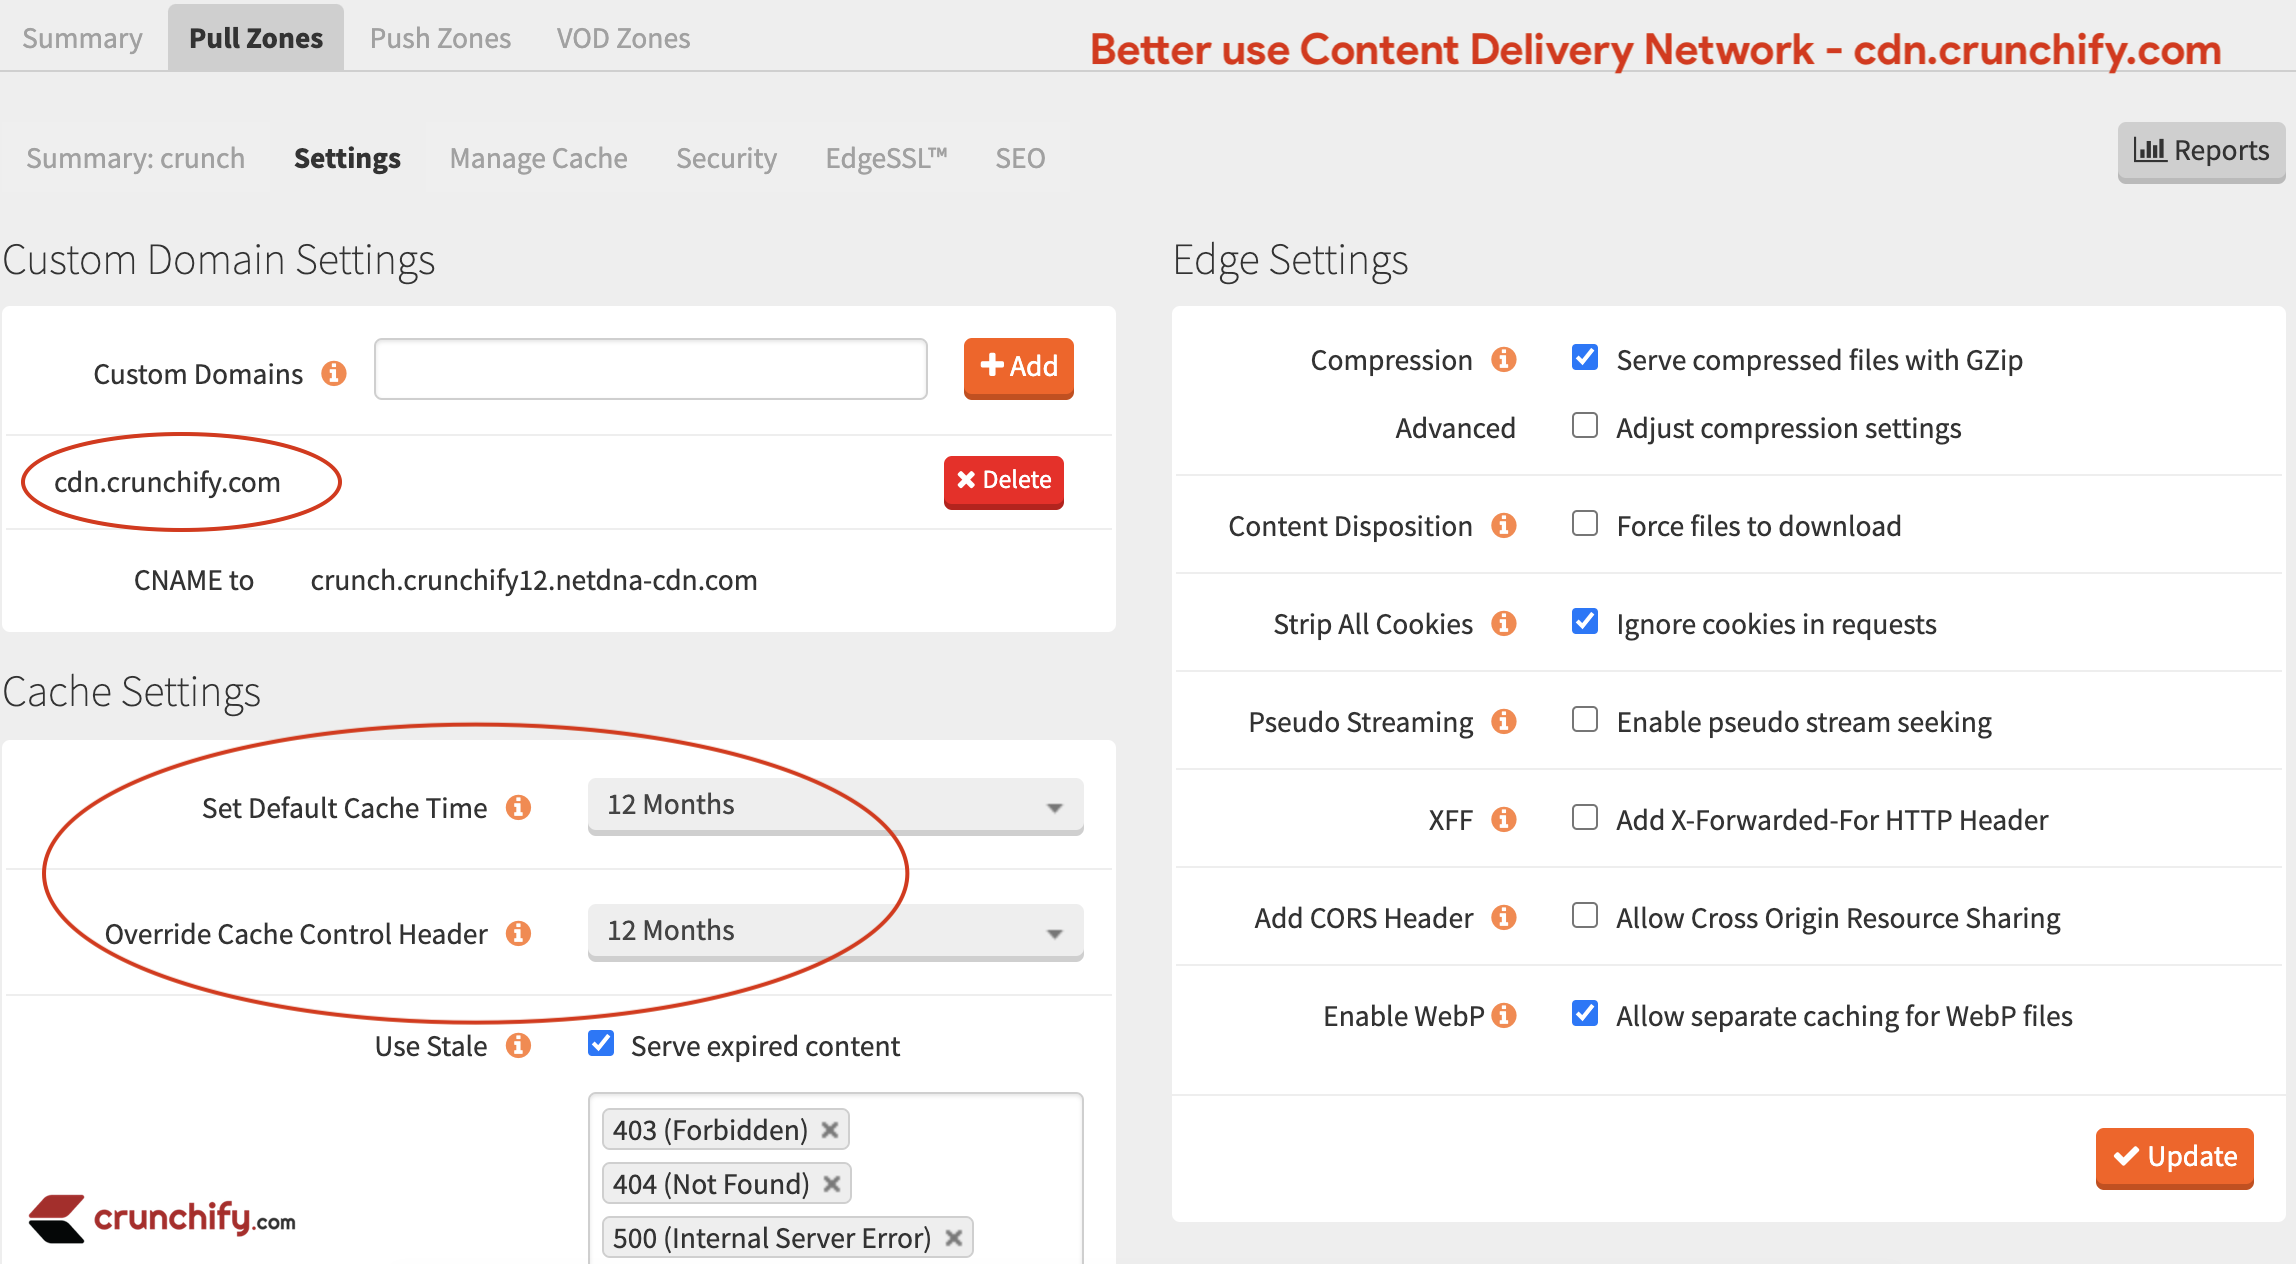 Use Content Delivery Network - cdn.crunchify.com